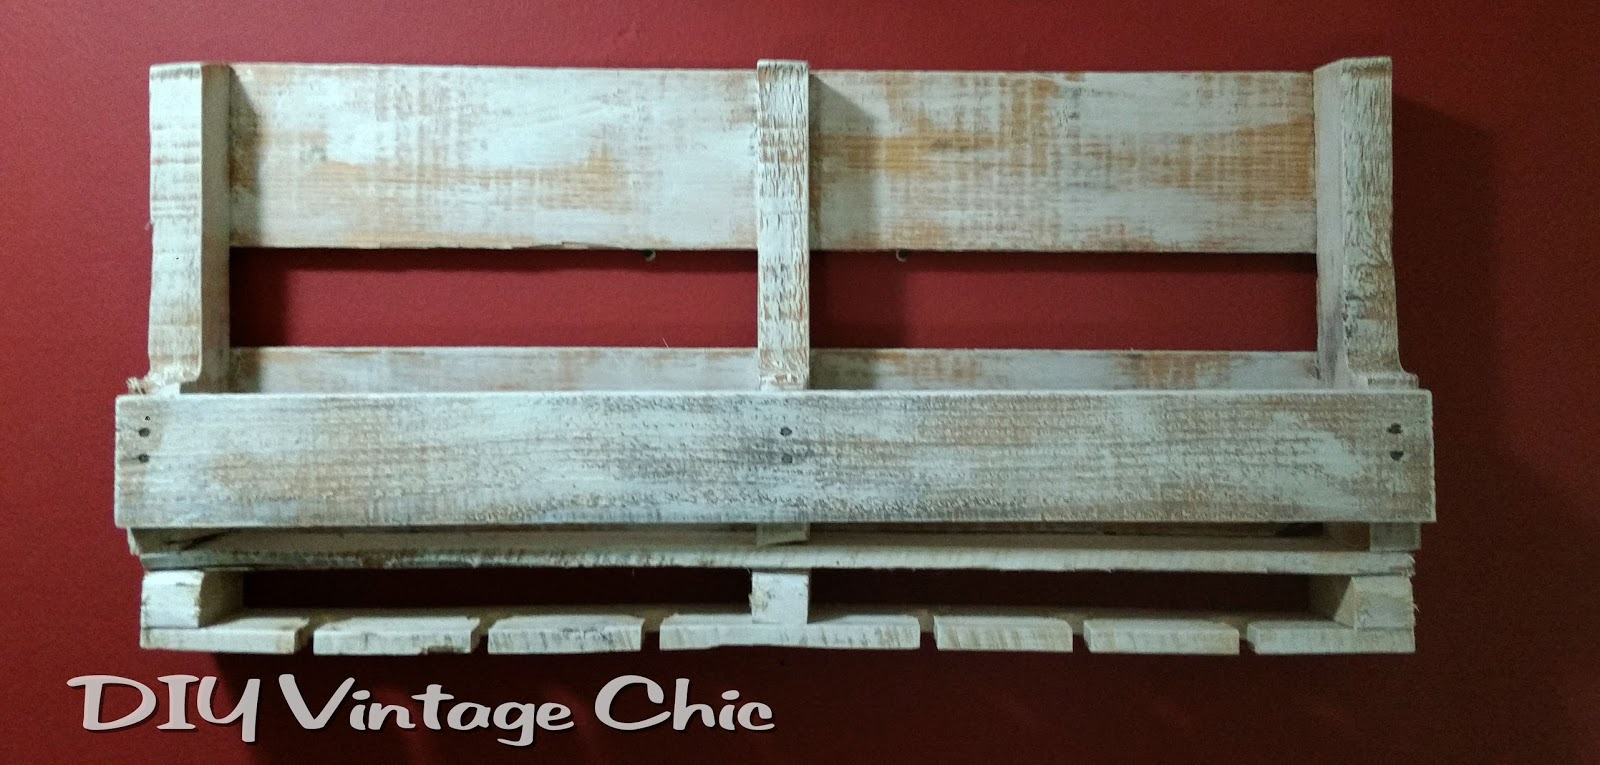 Diy vintage chic pallet wine rack for How to make a wine rack out of pallet wood